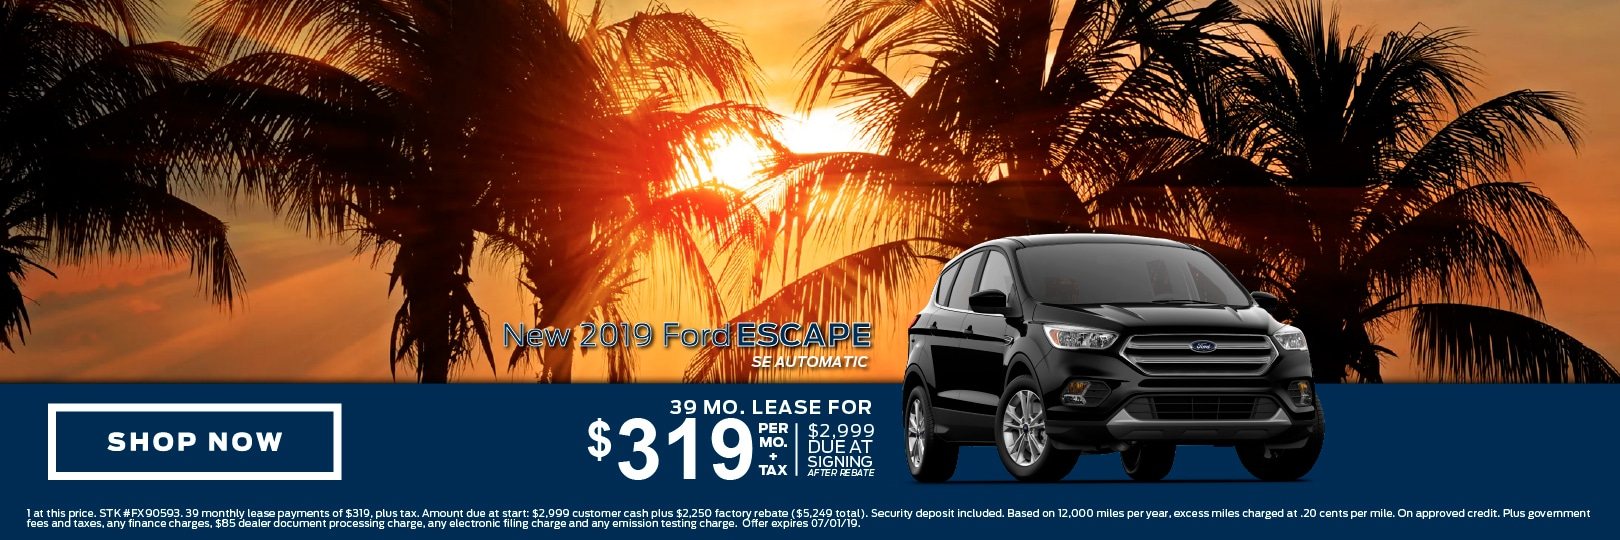 Dch Ford Of Thousand Oaks >> New Ford & Used Car Dealer | DCH Ford of Thousand Oaks